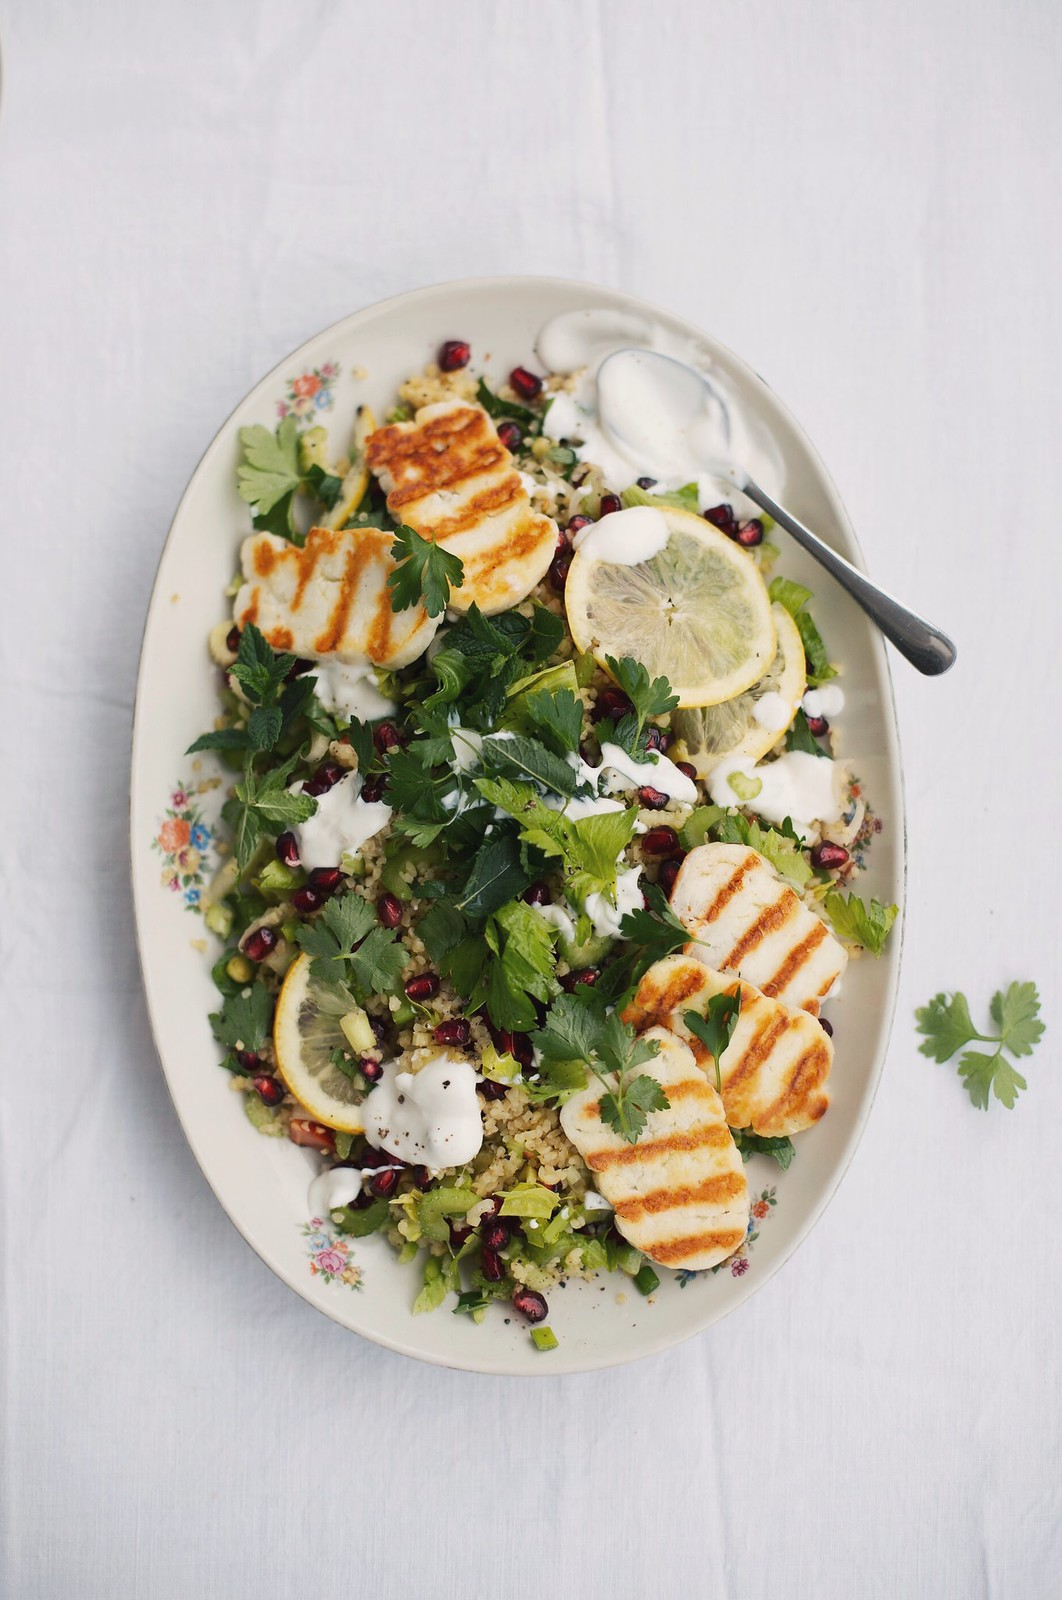 Bulgur Salad with Halloumi, Visual Diary on The Curly Head, a Blog from Munich, Photography by Amelie Niederbuchner